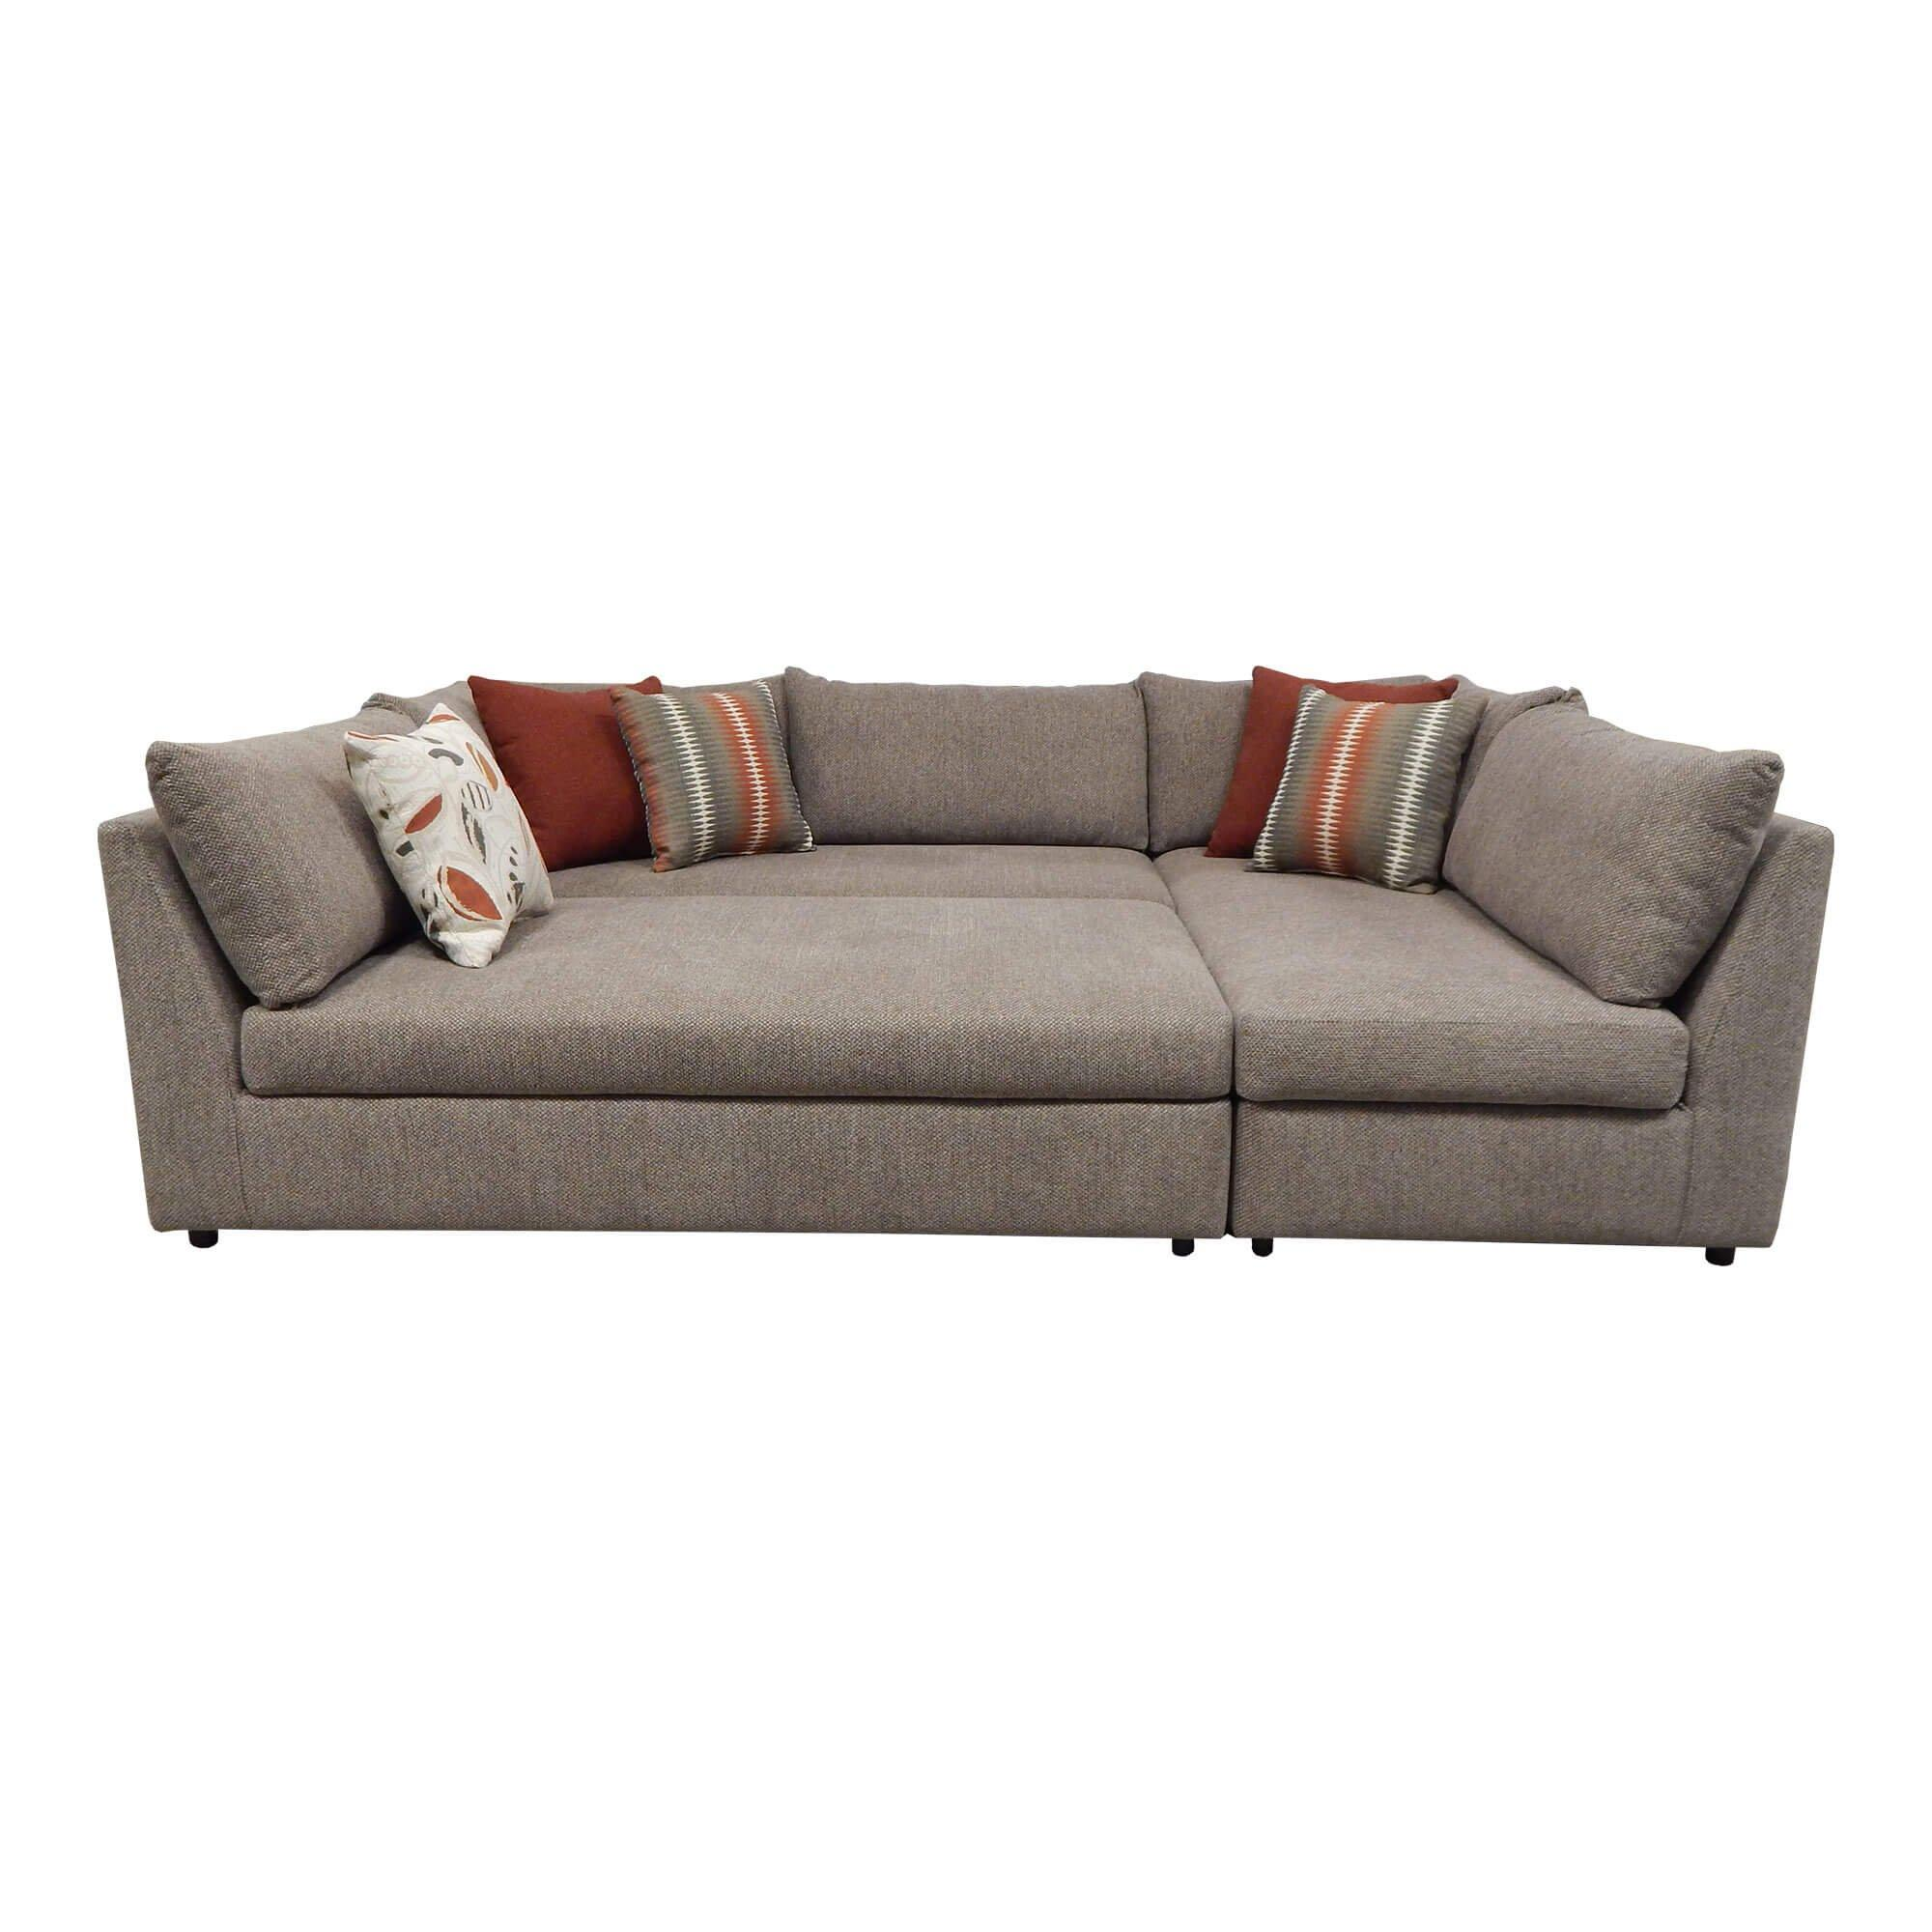 Rent To Own Woodhaven 3 Piece Puzzle Chaise Sectional Sofa At Aaron S Today